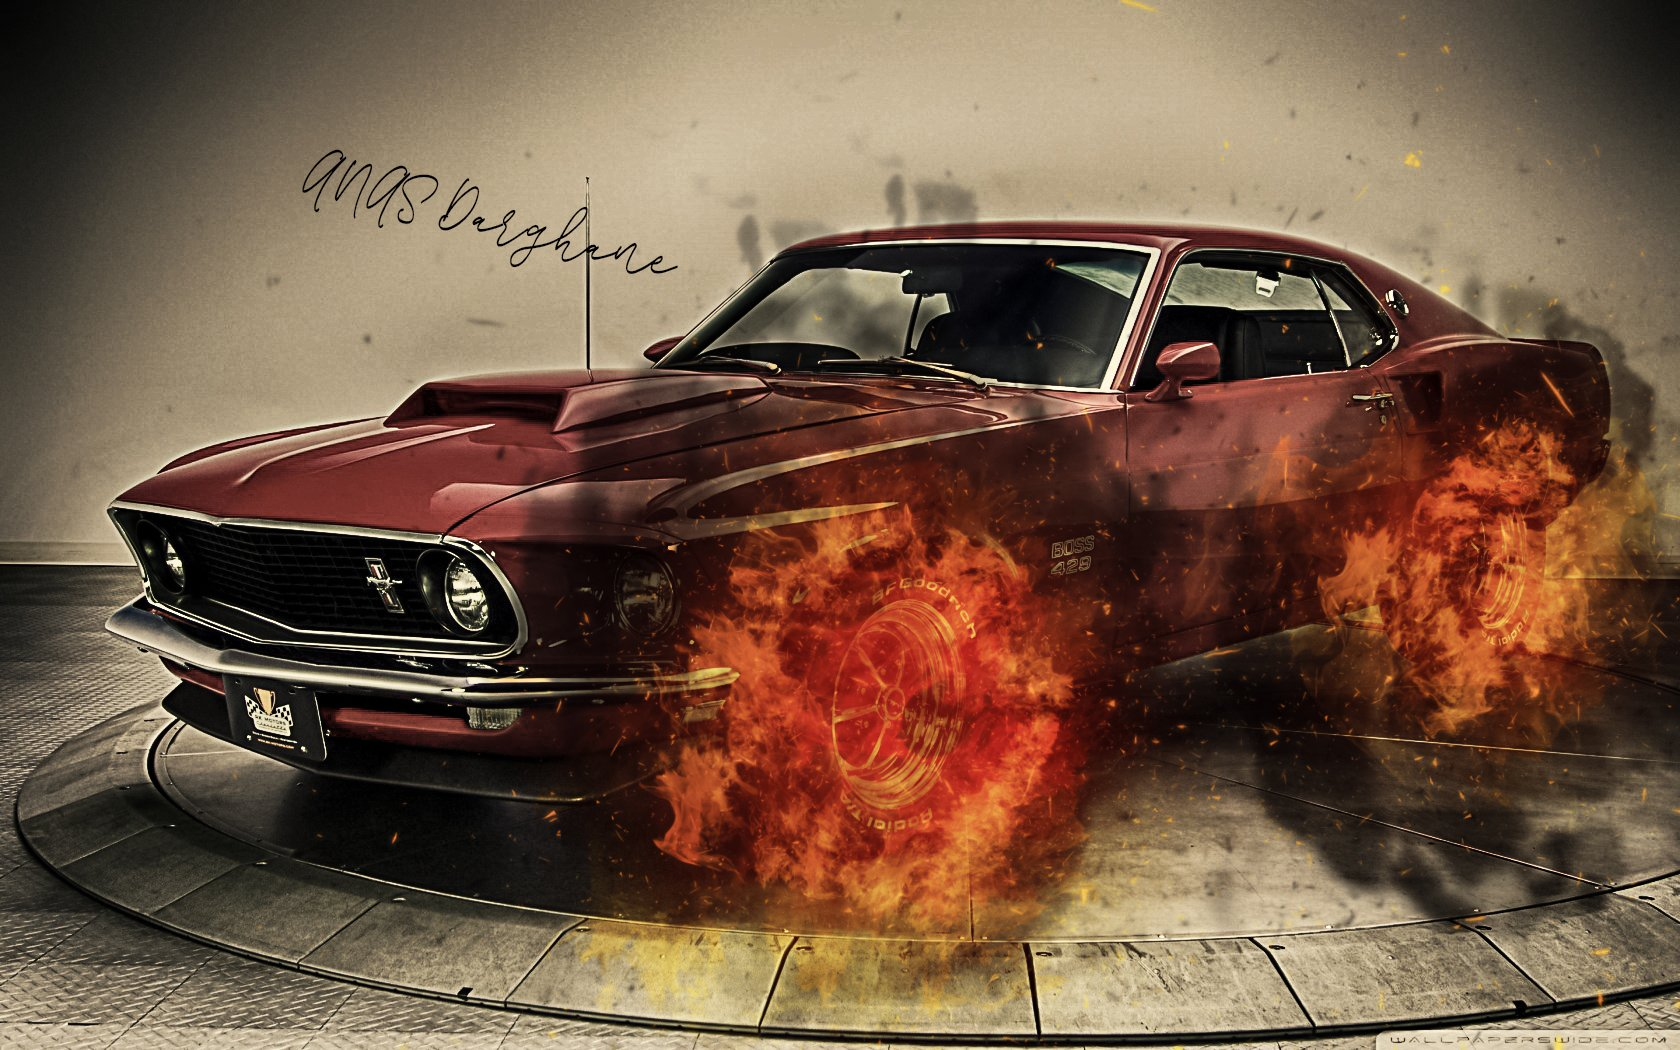 Ford Mustang Fire Wallpaper And Background Image 1680x1050 Id